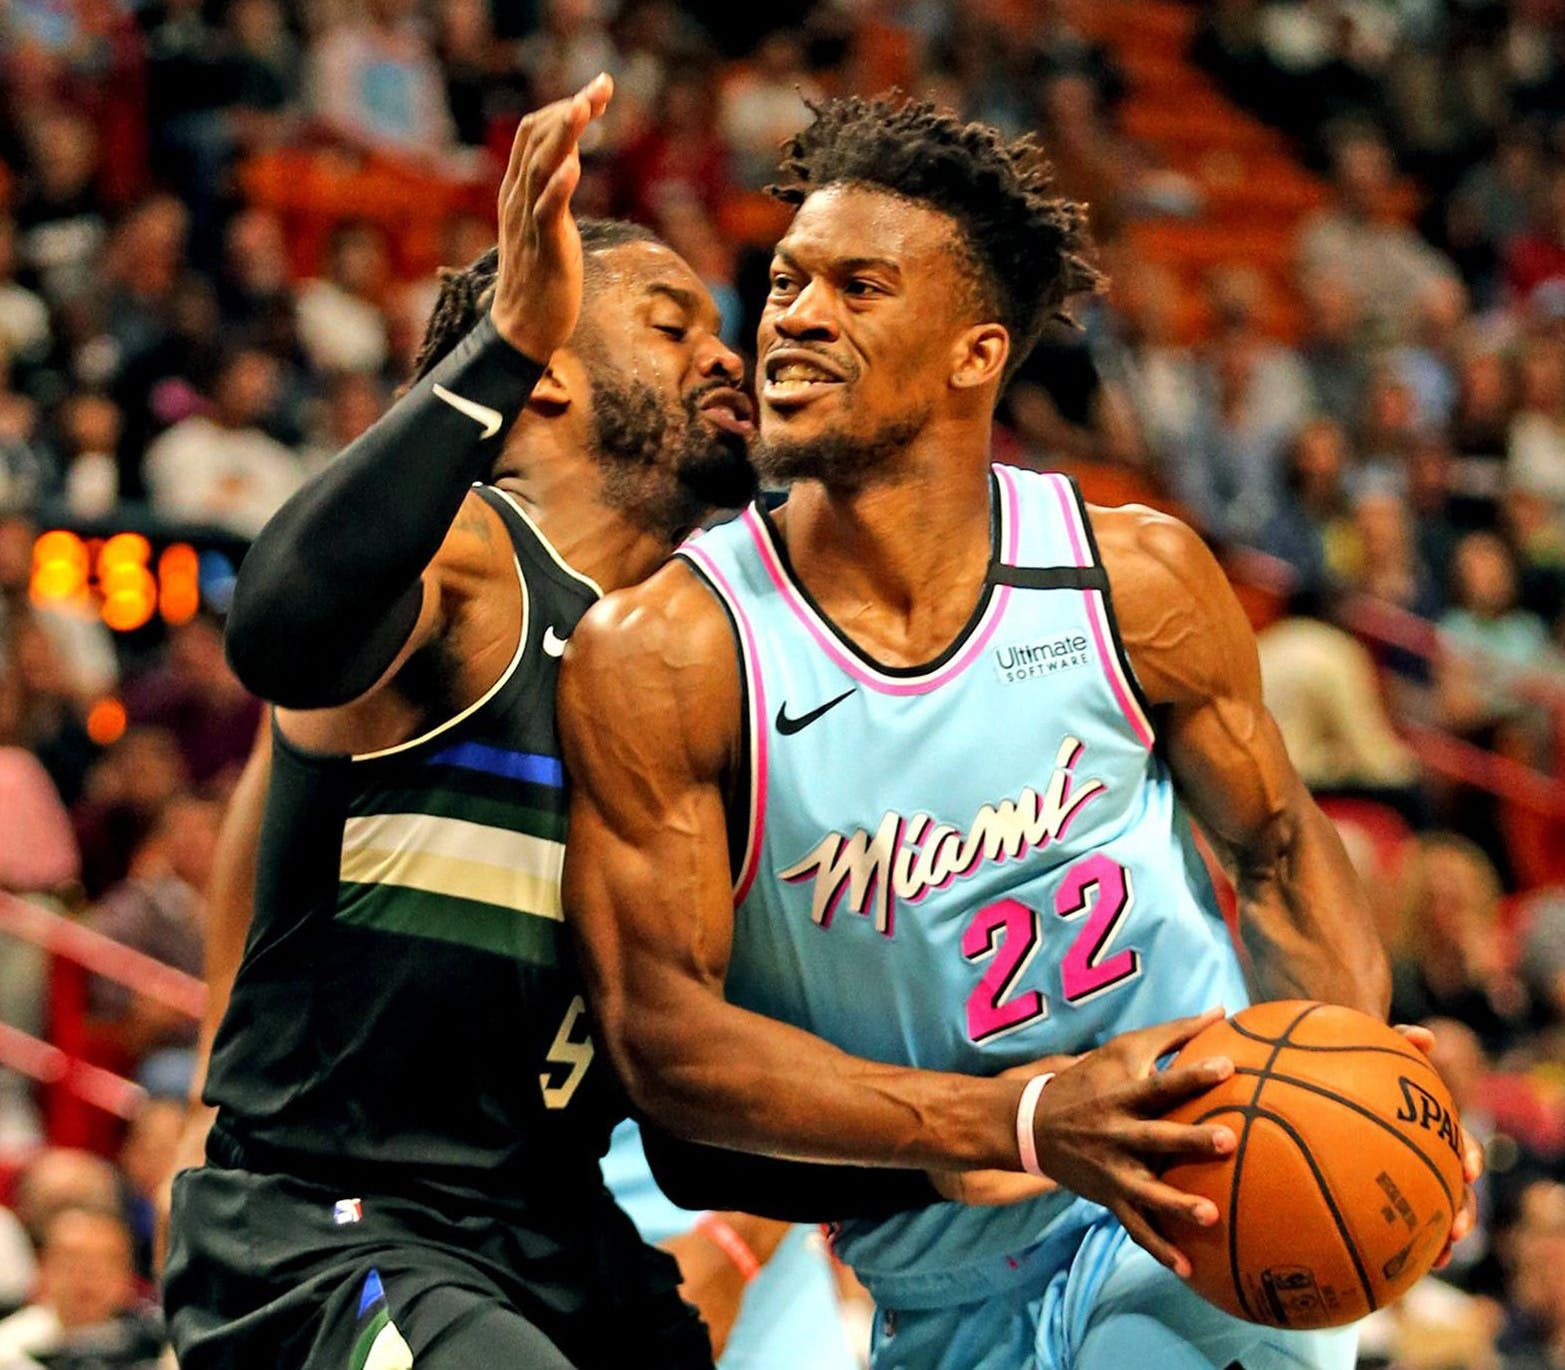 Pin by Charlie Harrell on Jimmy Butler in 2020 Jimmy